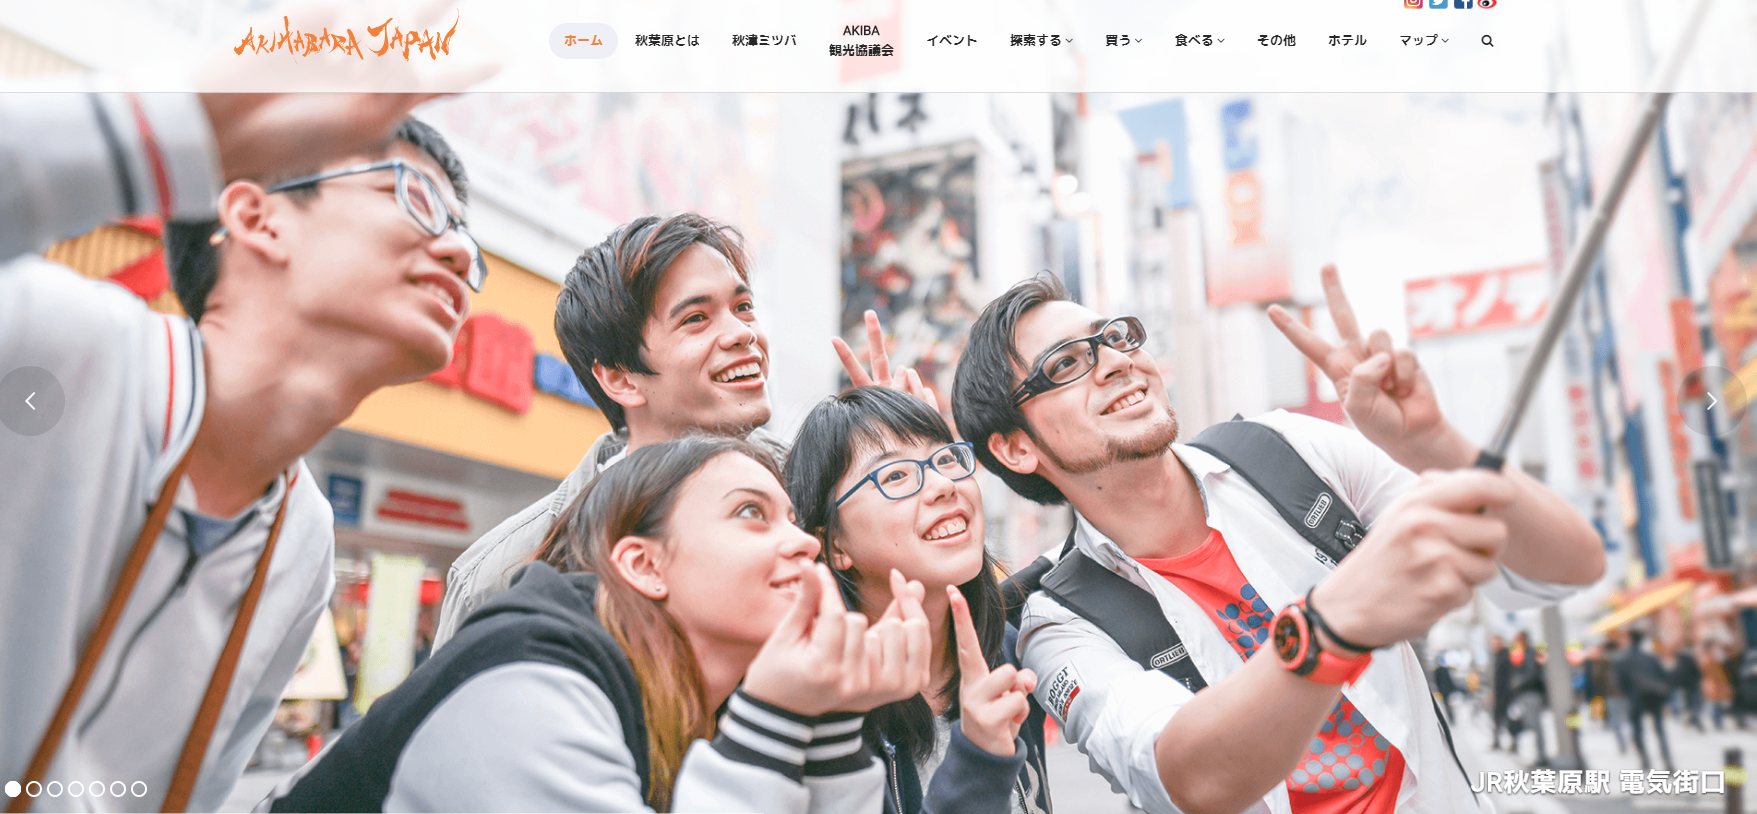 Photos Newly Posted on AKIHABARA JAPAN's Homepage were All Taken Locally